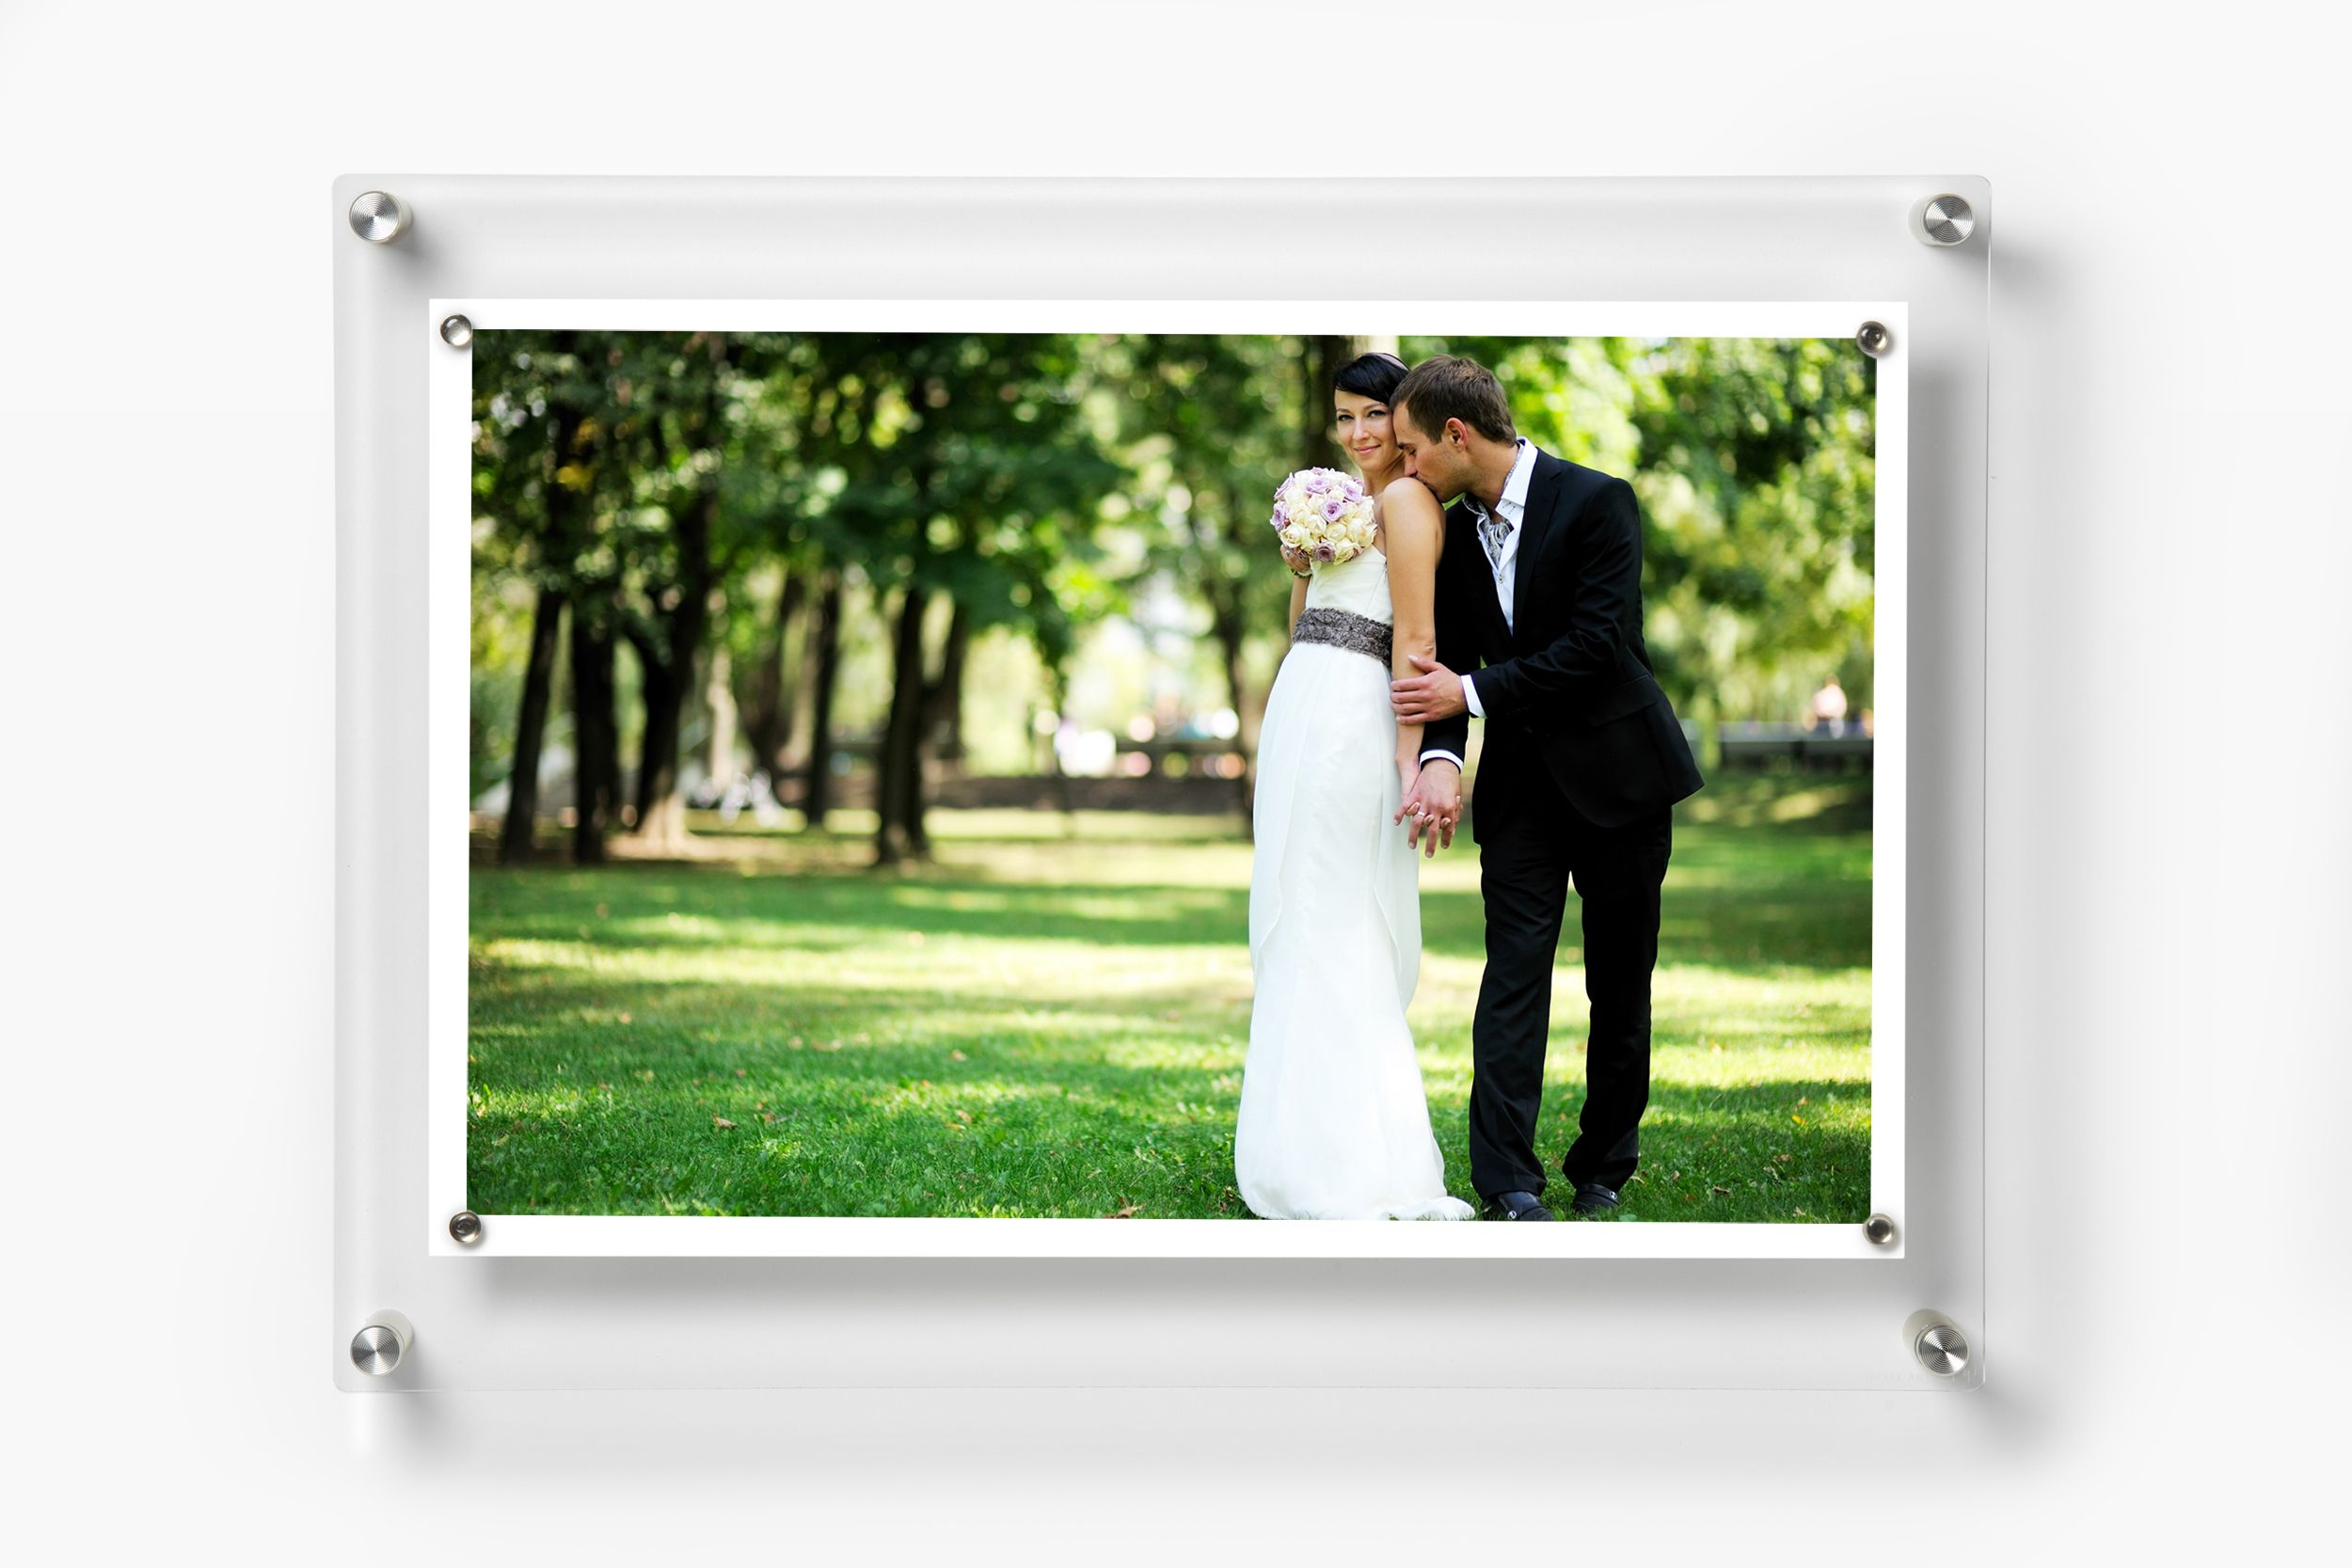 14 X 19 Easy Change Float Frame Magnets For 11 X 17 Art Silver Or Gold Frames On Wall Art Display Kids Floating Acrylic Frame